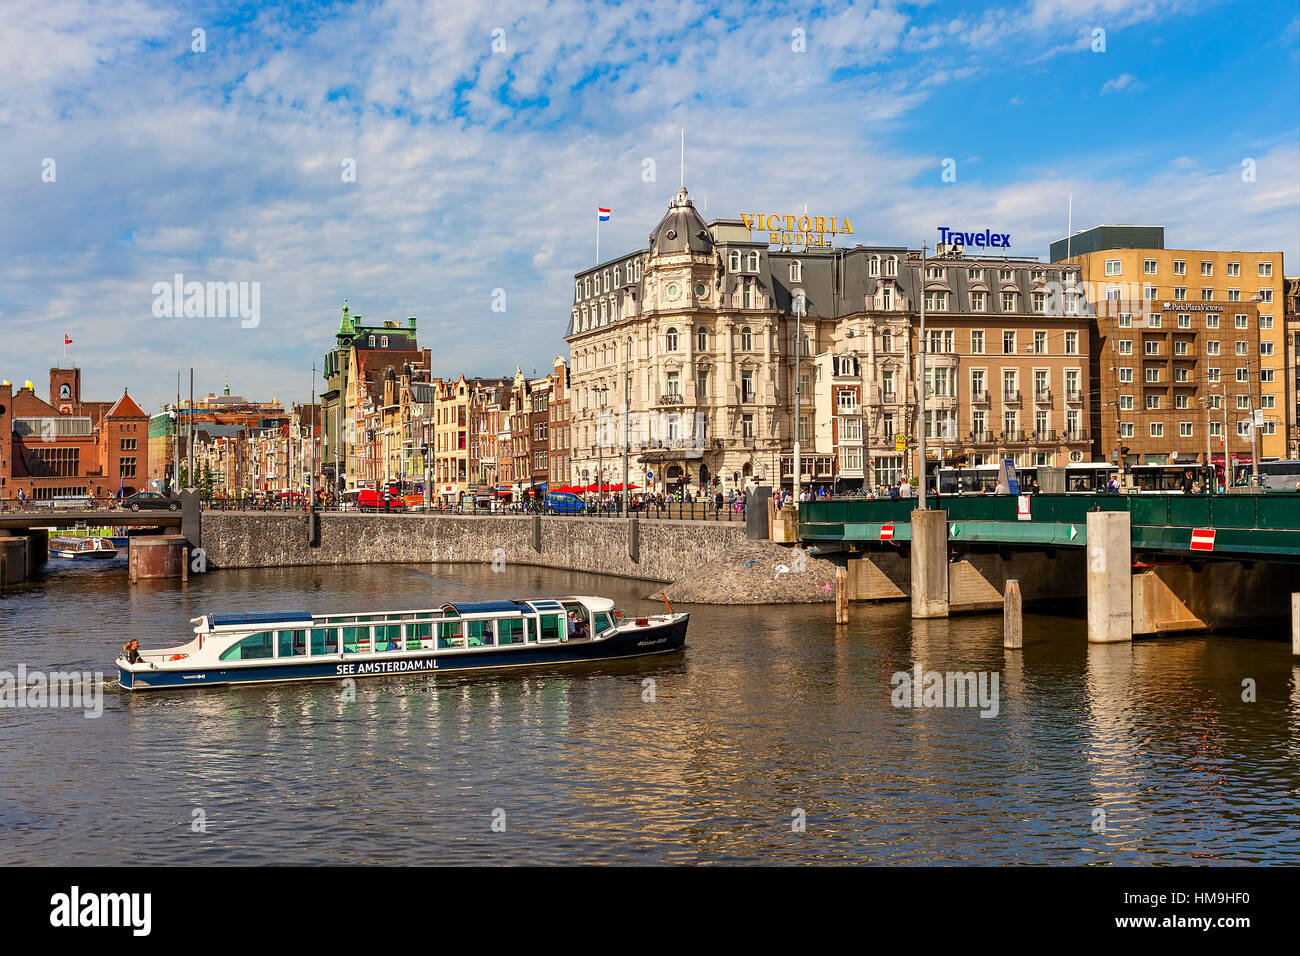 View of city center in Amsterdam - capital city and most populous in Netherlands. - Stock Image